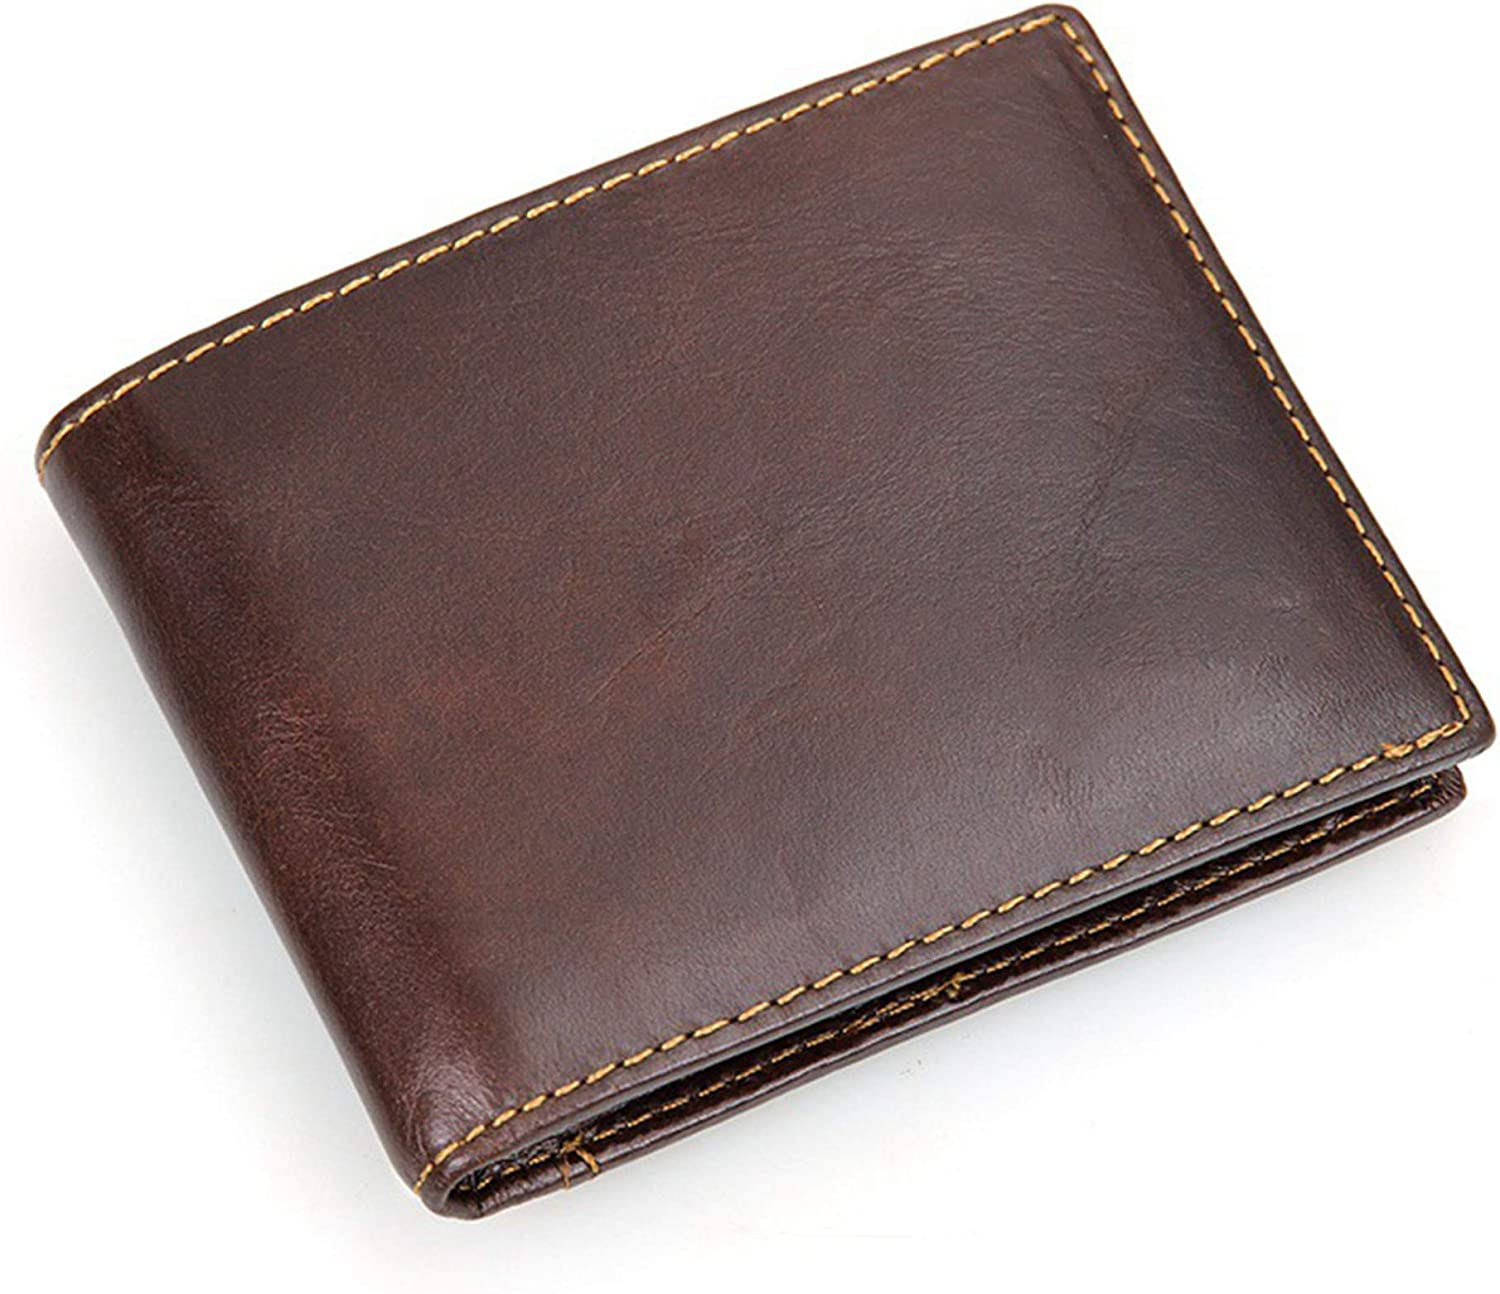 Mens Genuine Leather RFID Blocking Security Bifold Wallet with Removable 2 ID Windows(Dark brown)